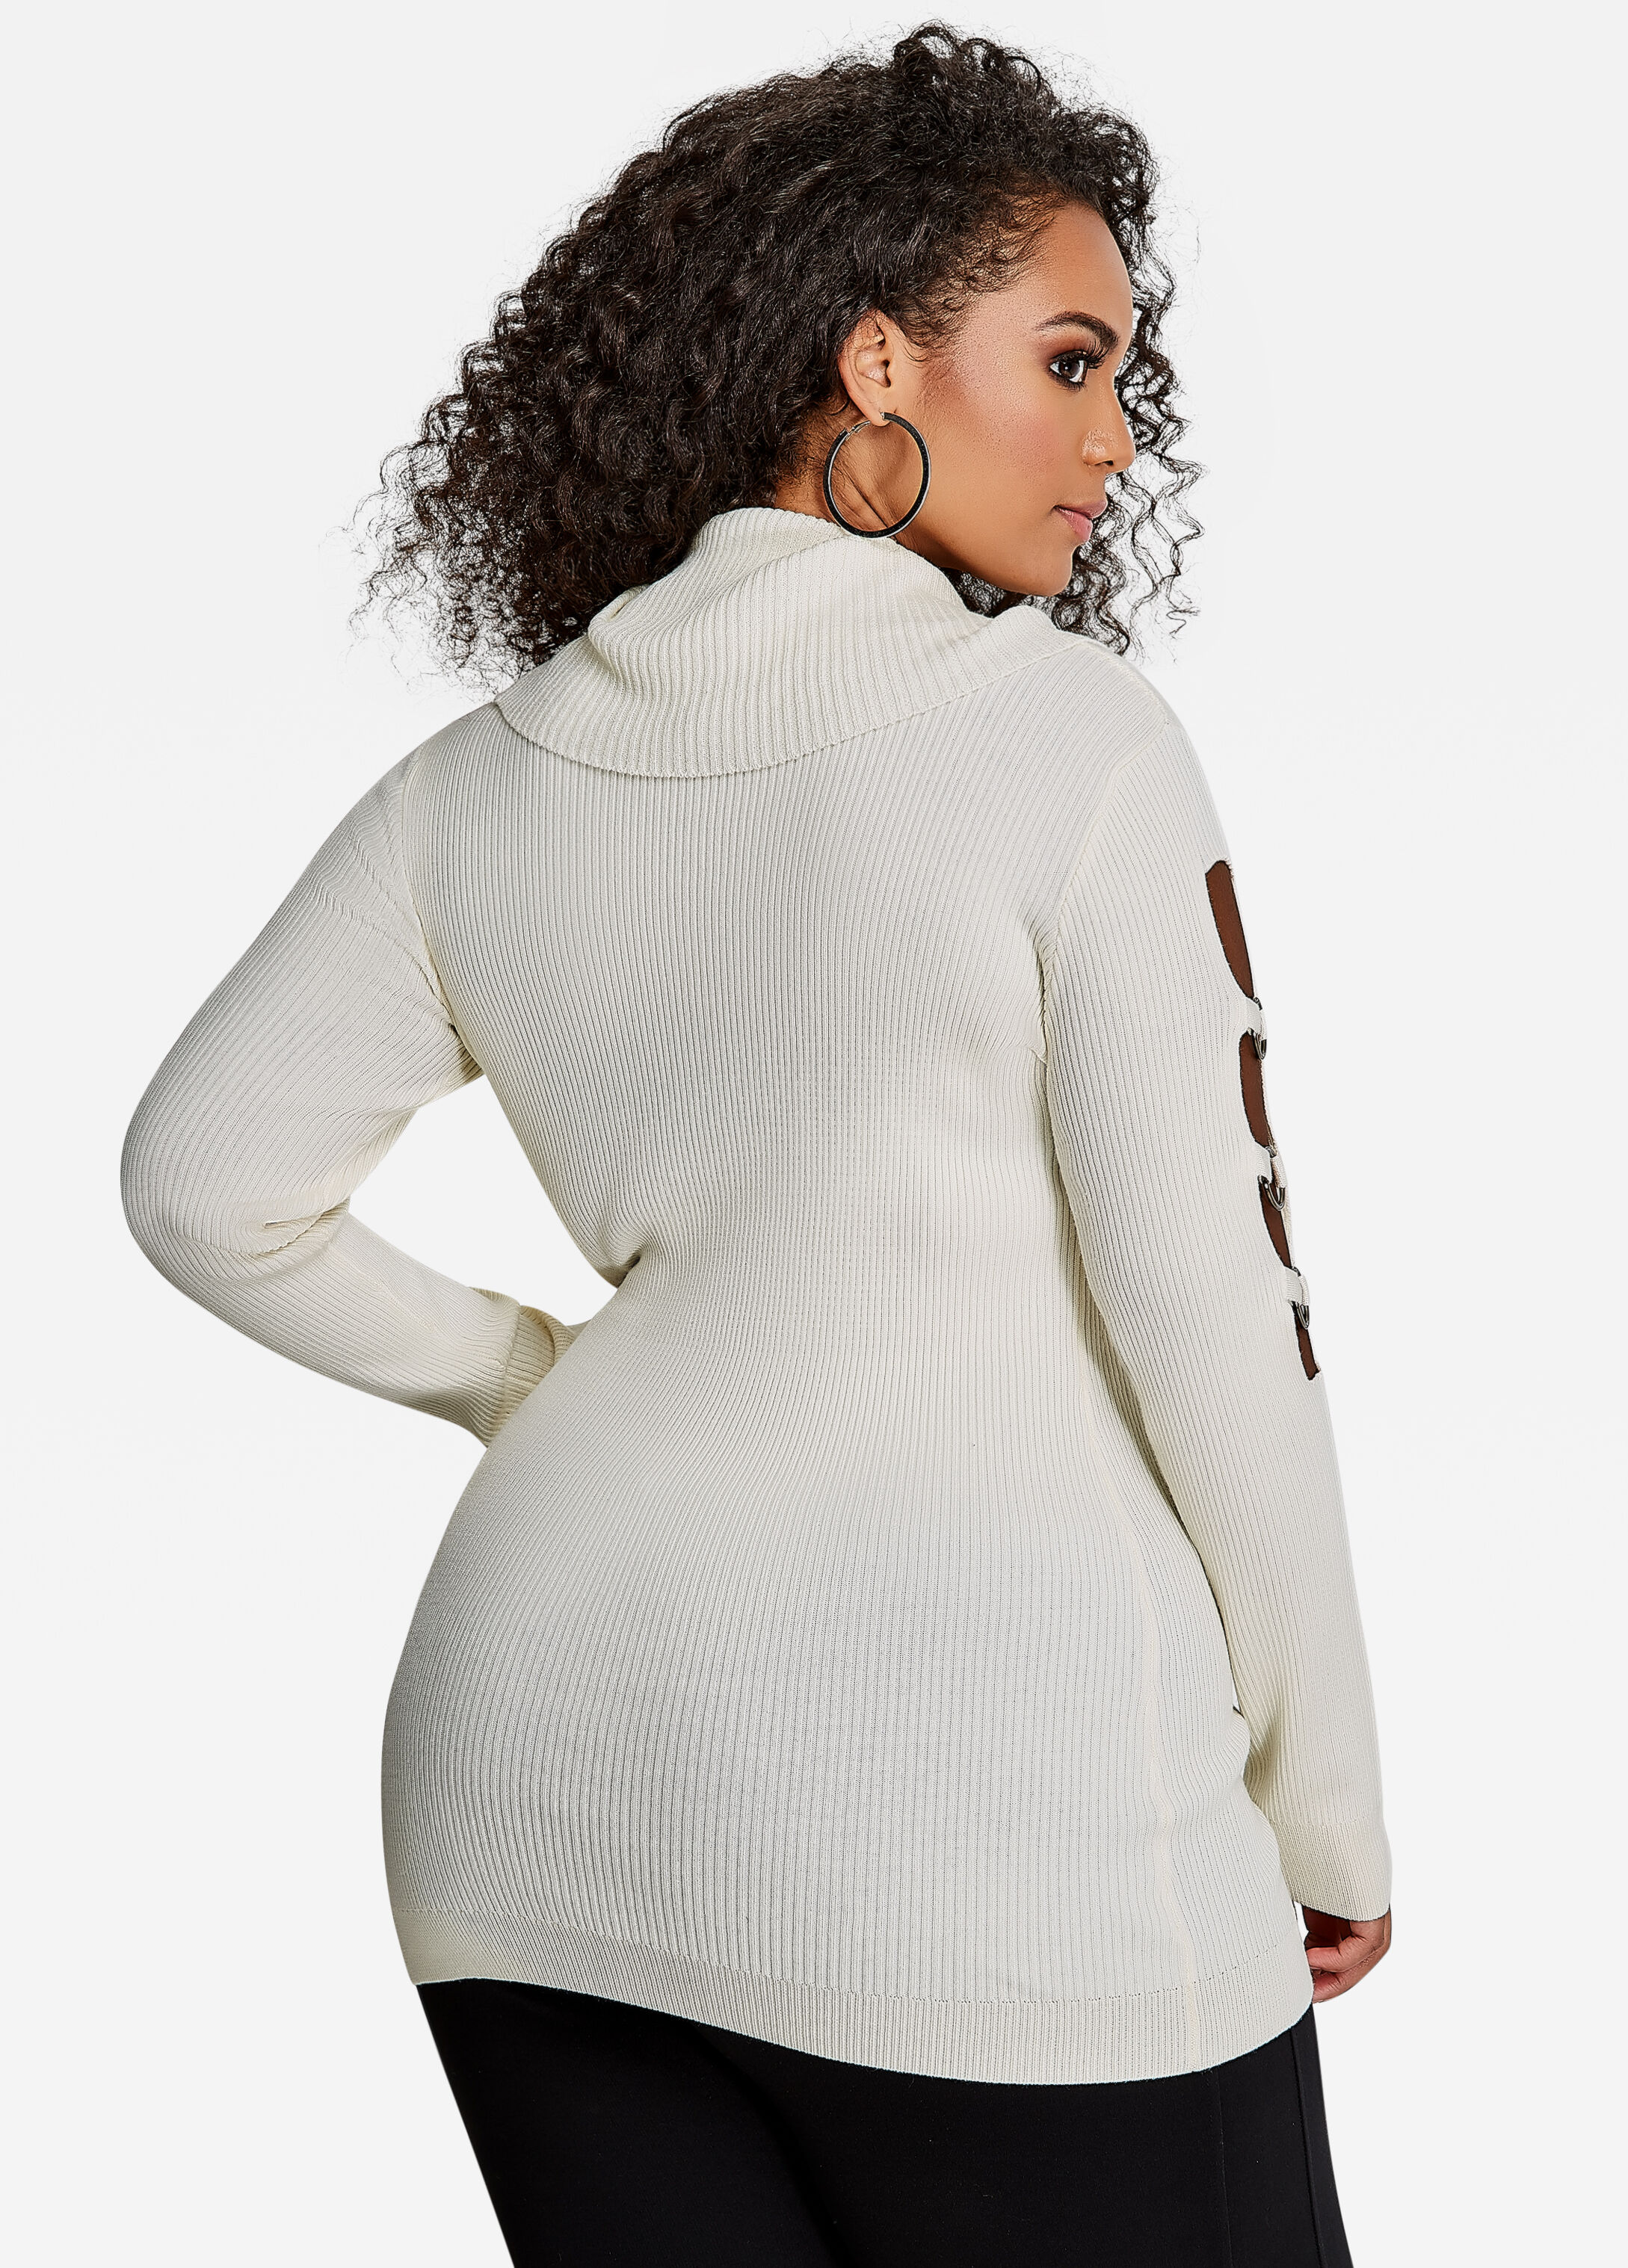 Plus Size Sweaters - Long Sleeve, Ring Cutout, Off-the-Shoulder ...